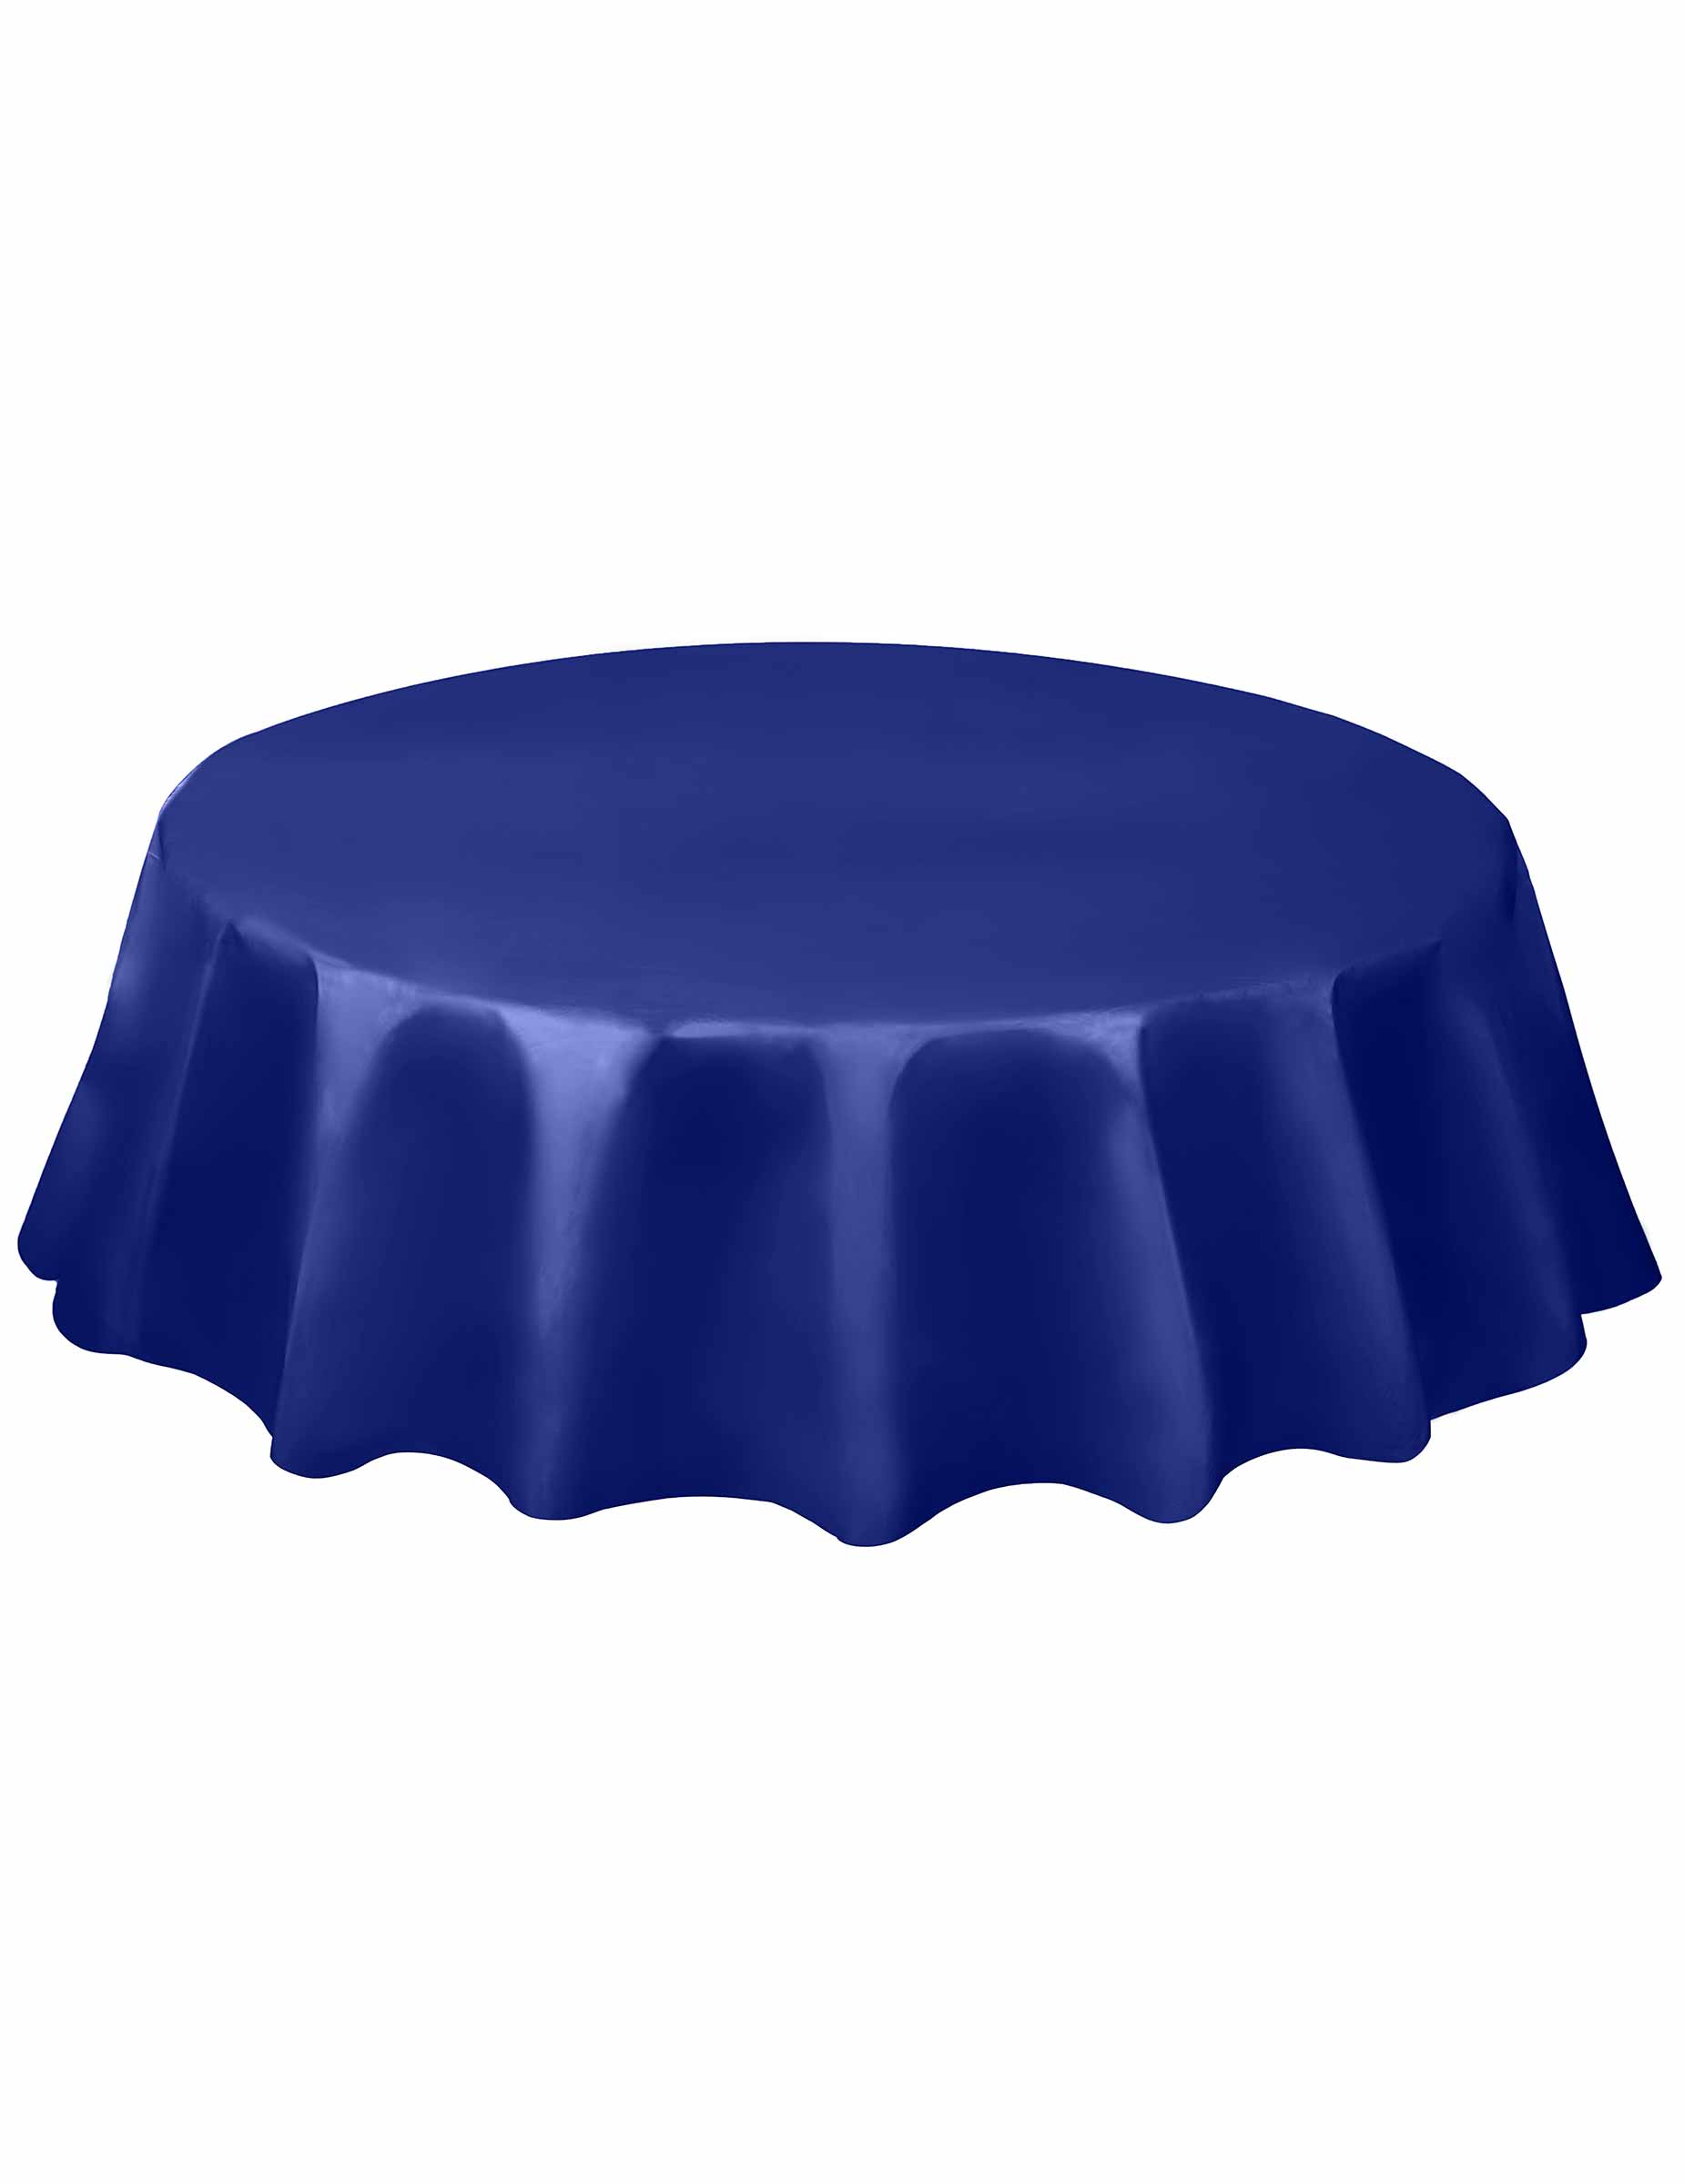 nappe ronde en plastique bleu marine 213 cm d coration. Black Bedroom Furniture Sets. Home Design Ideas